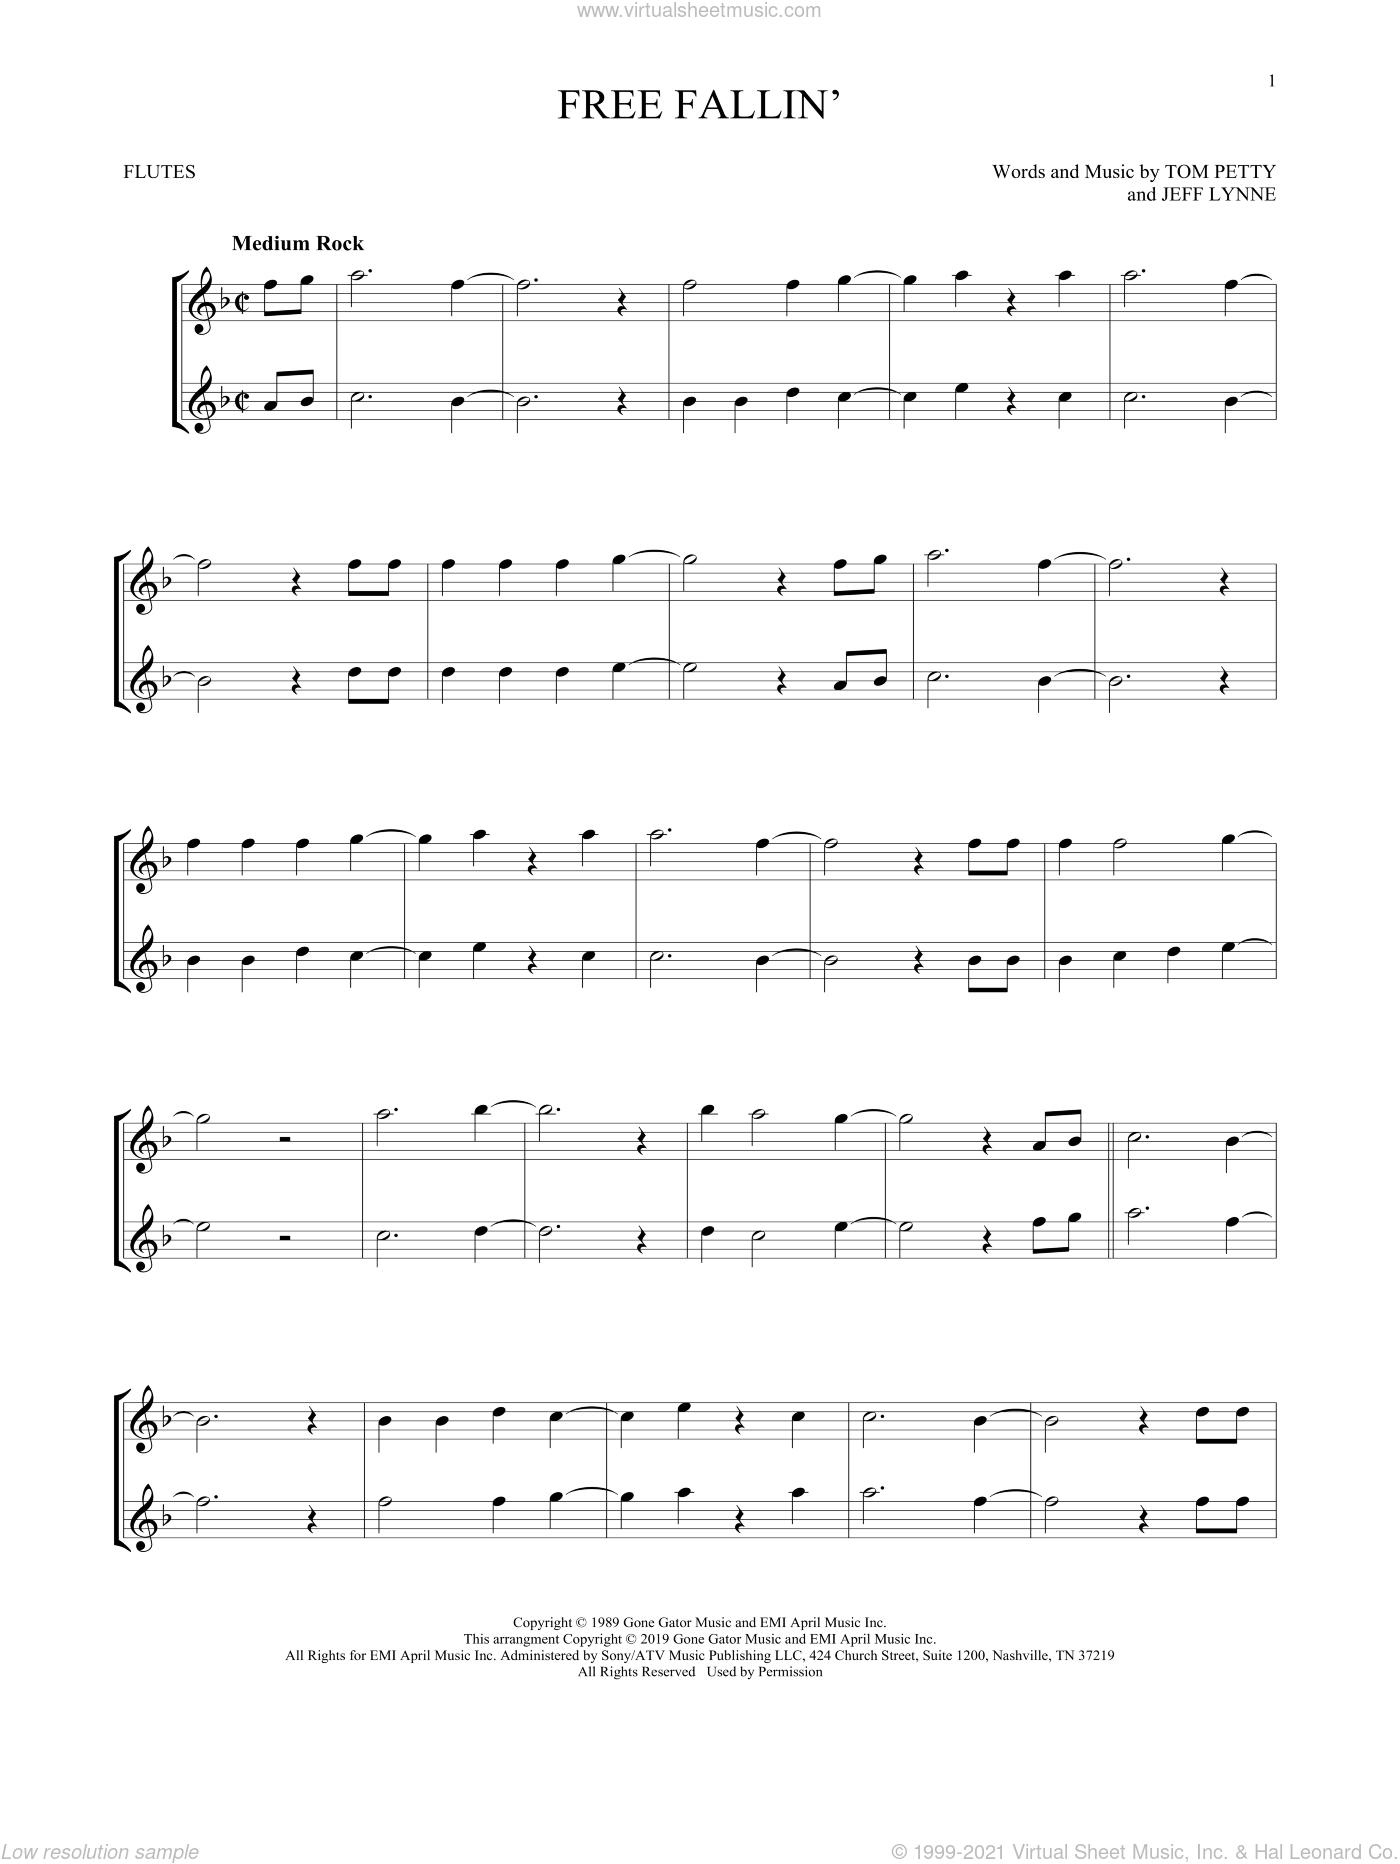 Free Fallin' sheet music for two flutes (duets) by Tom Petty and Jeff Lynne, intermediate skill level